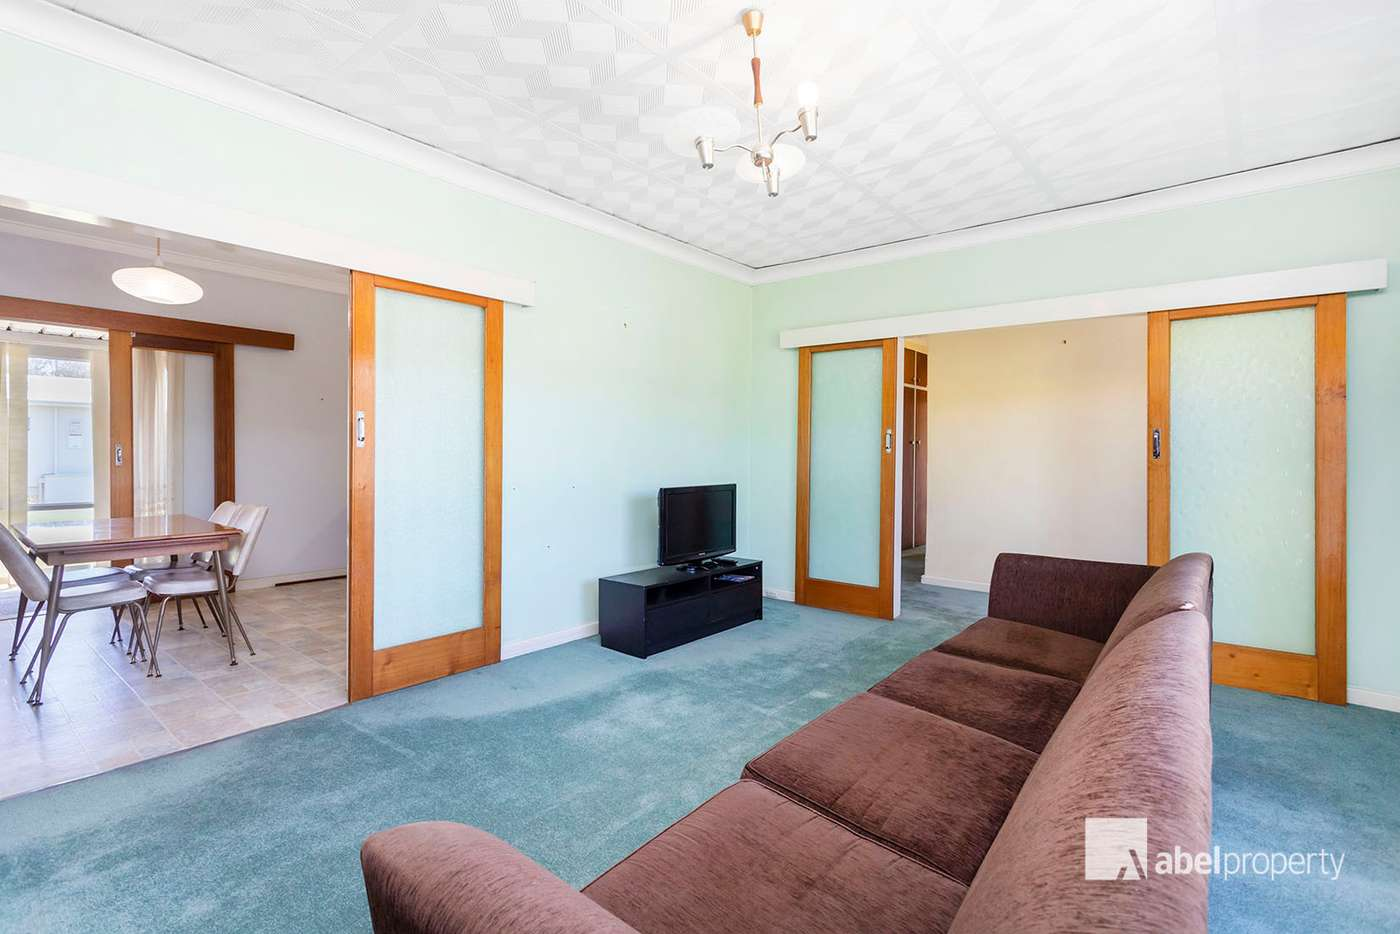 Sixth view of Homely house listing, 245 Charles Street, North Perth WA 6006